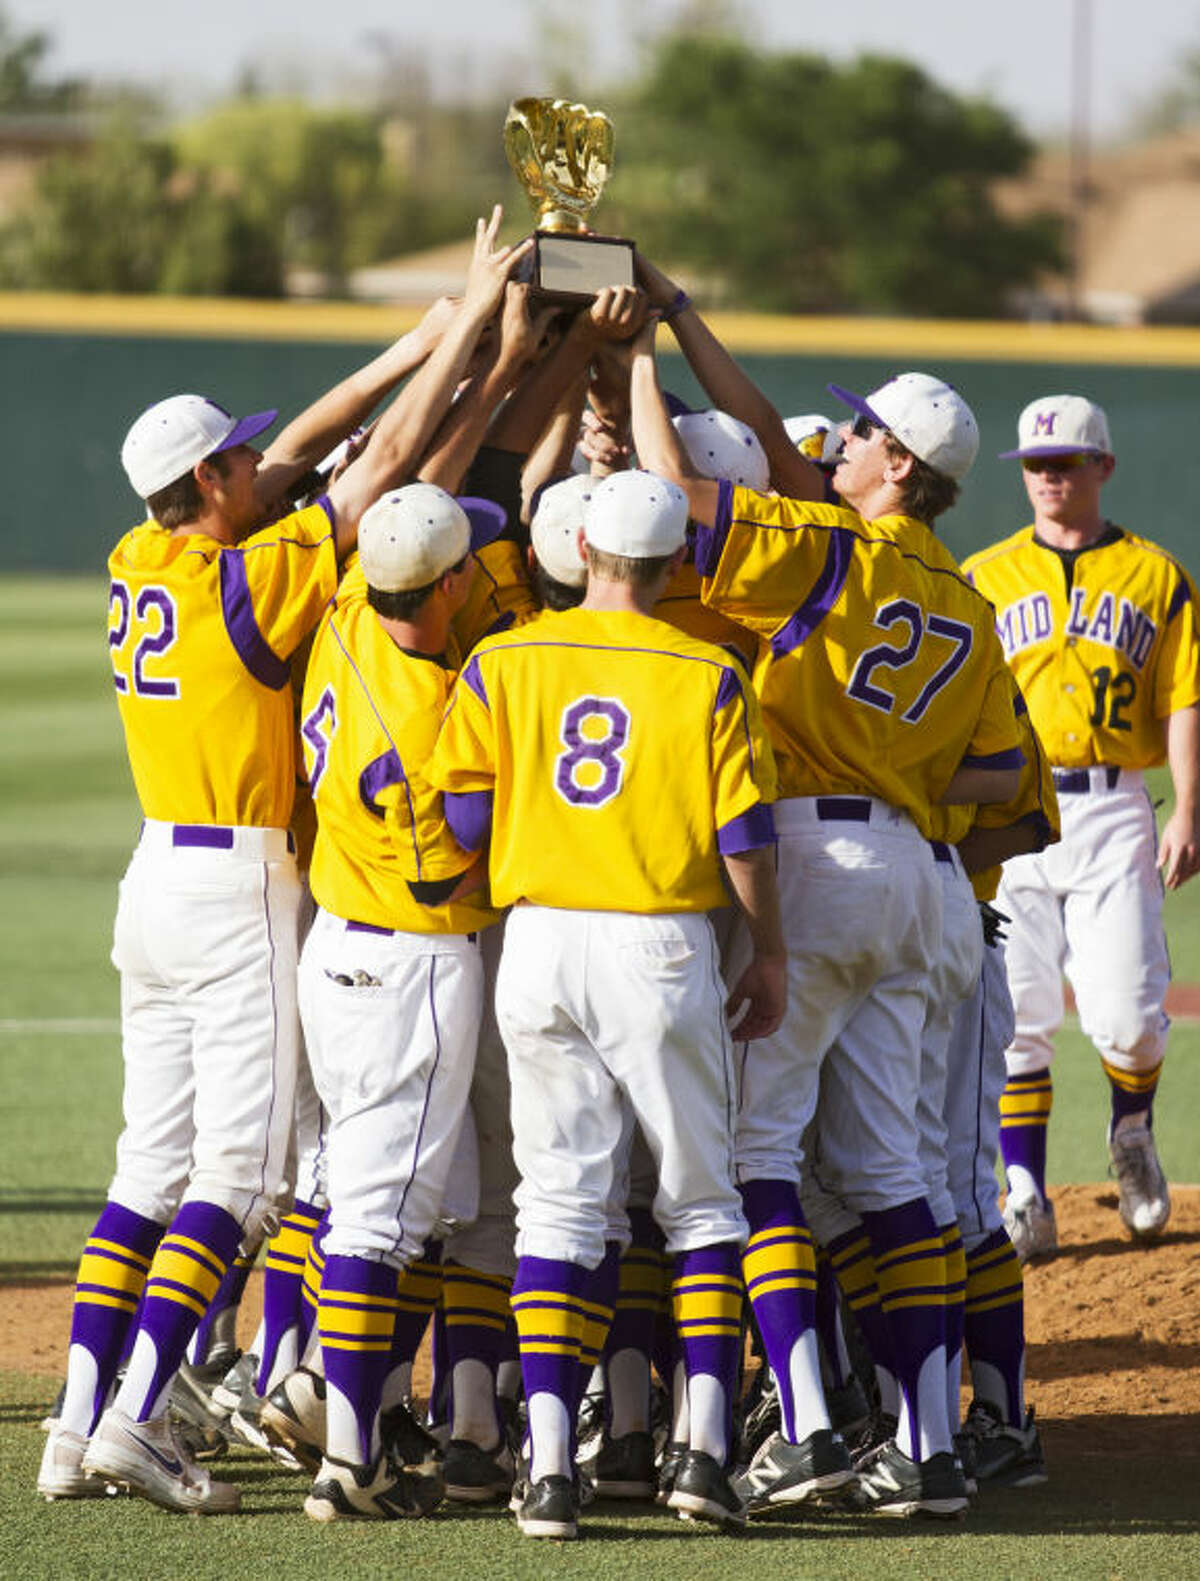 Midland High players hold up the Class 5A Area Trophy after the Bulldogs' 16-14 victory against Richland in the UIL Area Championship on Saturday at Hays Field in Lubbock.